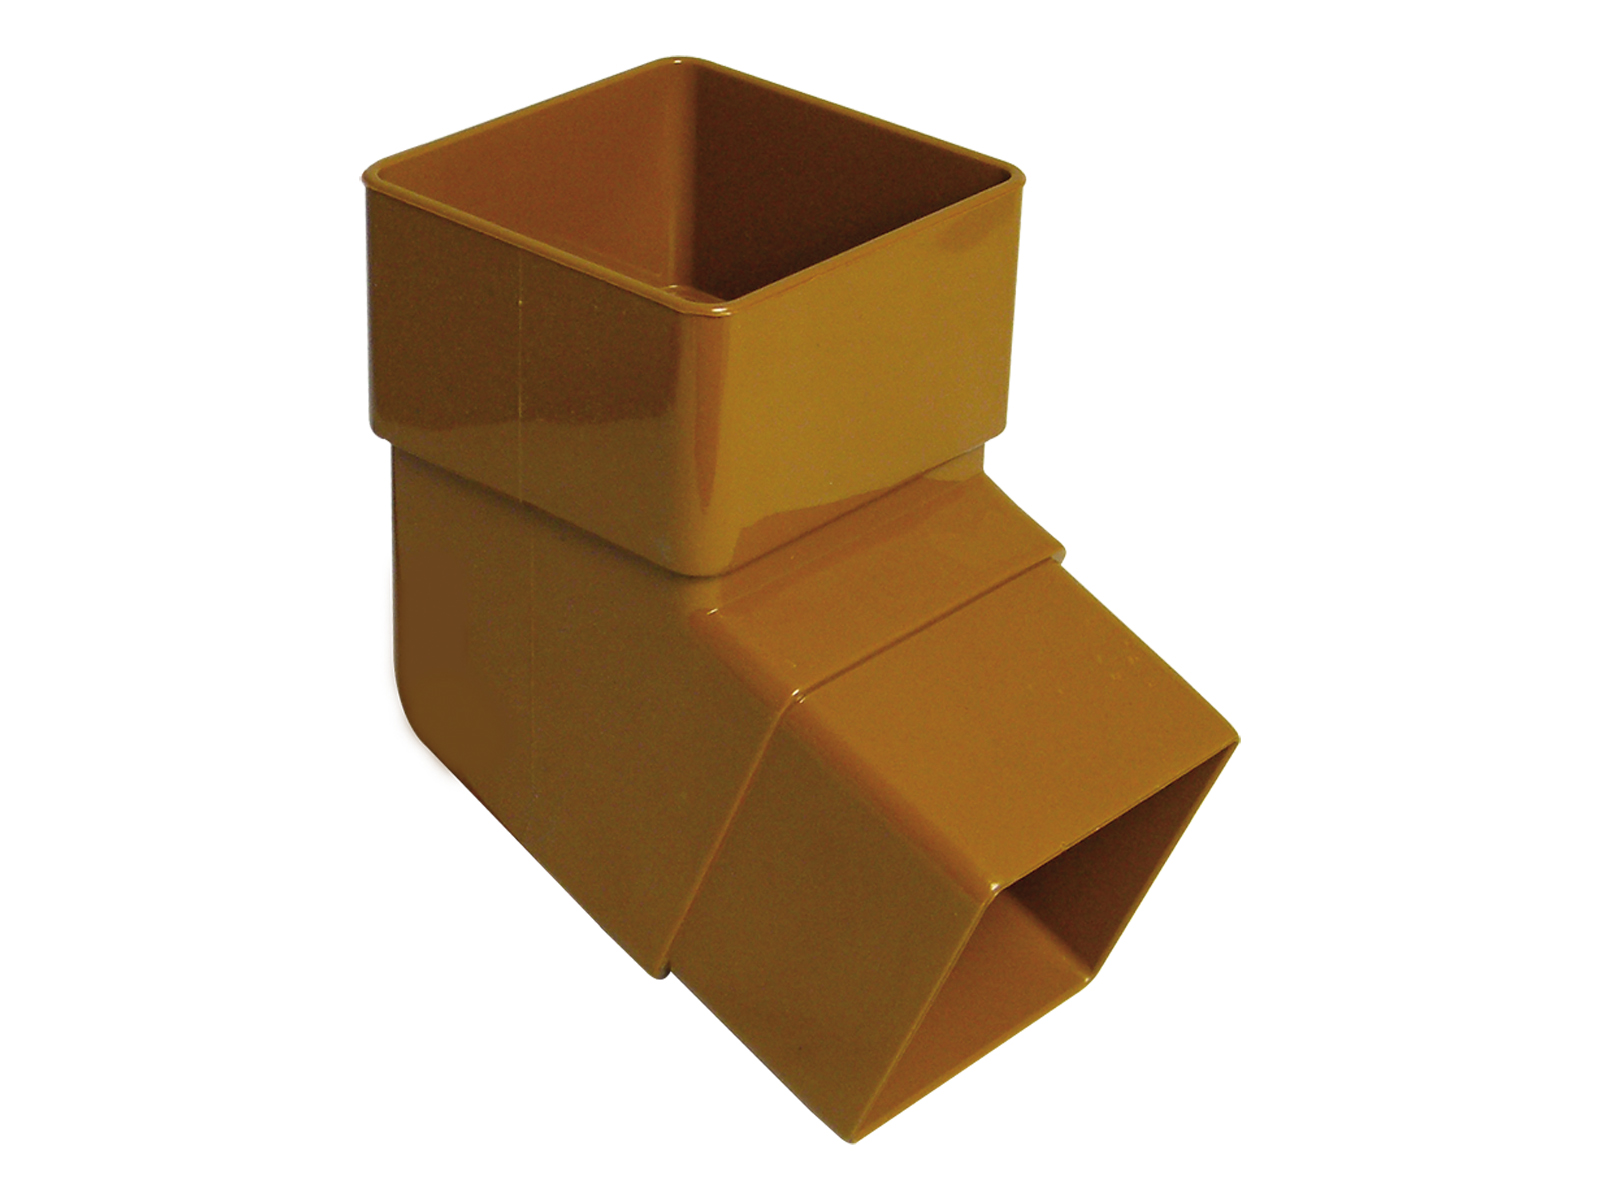 FLOPLAST RBS2CA 65MM SQUARE DOWNPIPE - 112.5* OFFSET BEND - CARAMEL